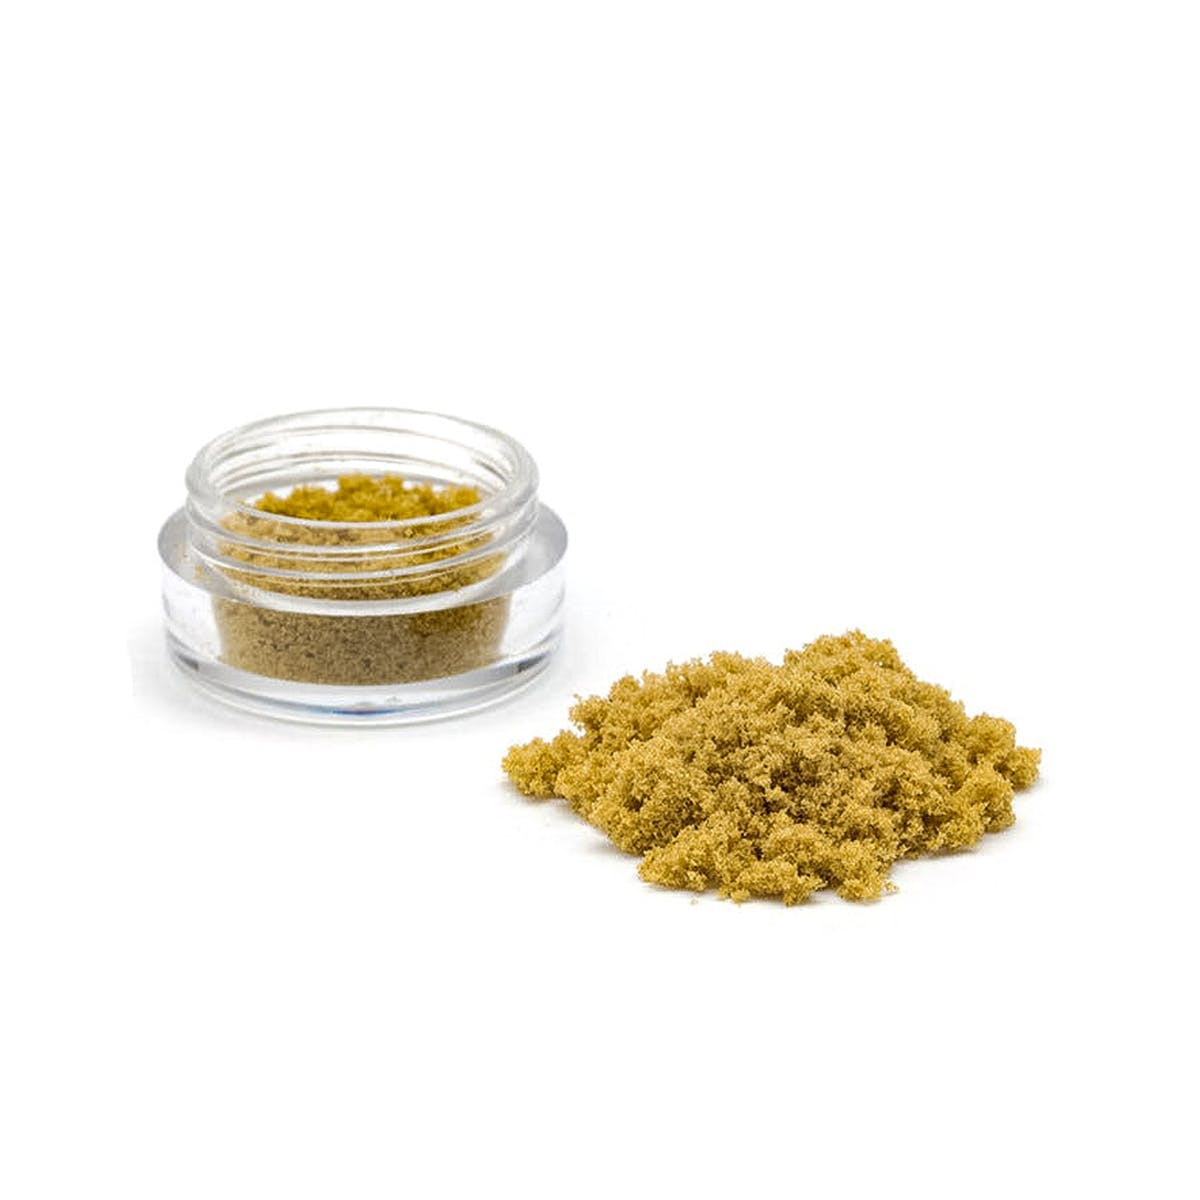 marijuana-dispensaries-all-kind-in-portland-kief